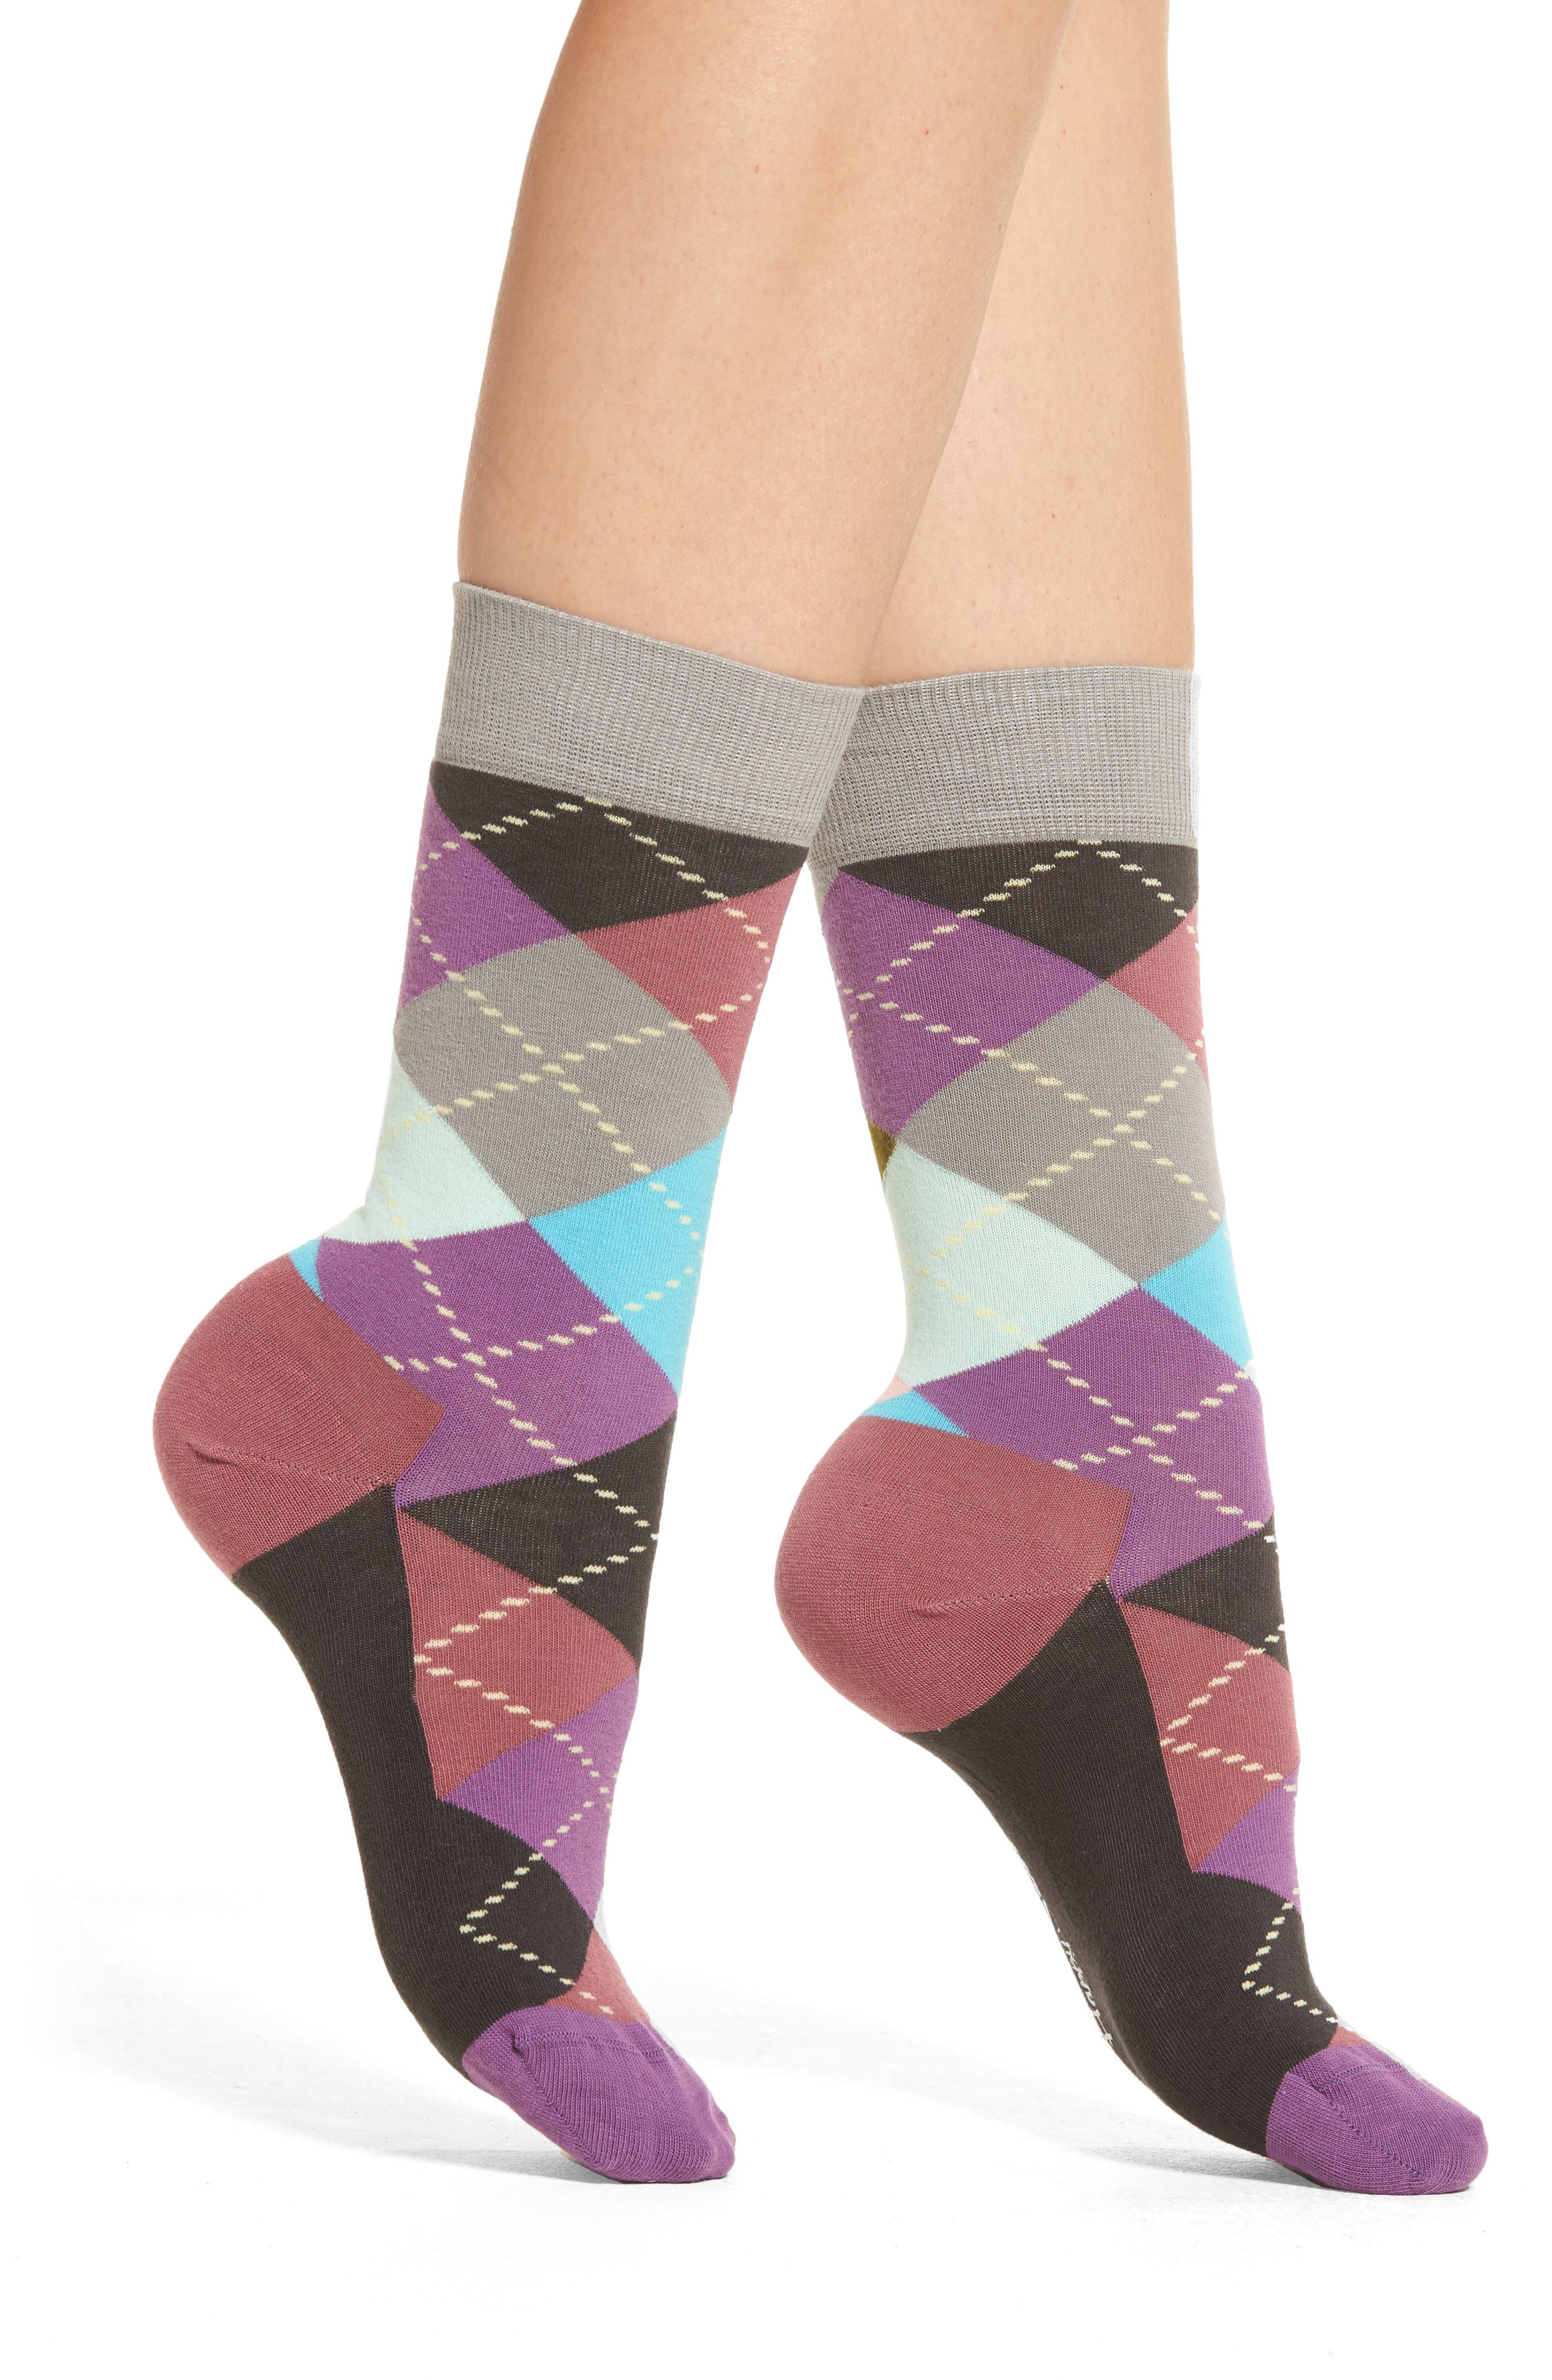 Happy Socks 'Checker' Low Cut Athletic Socks